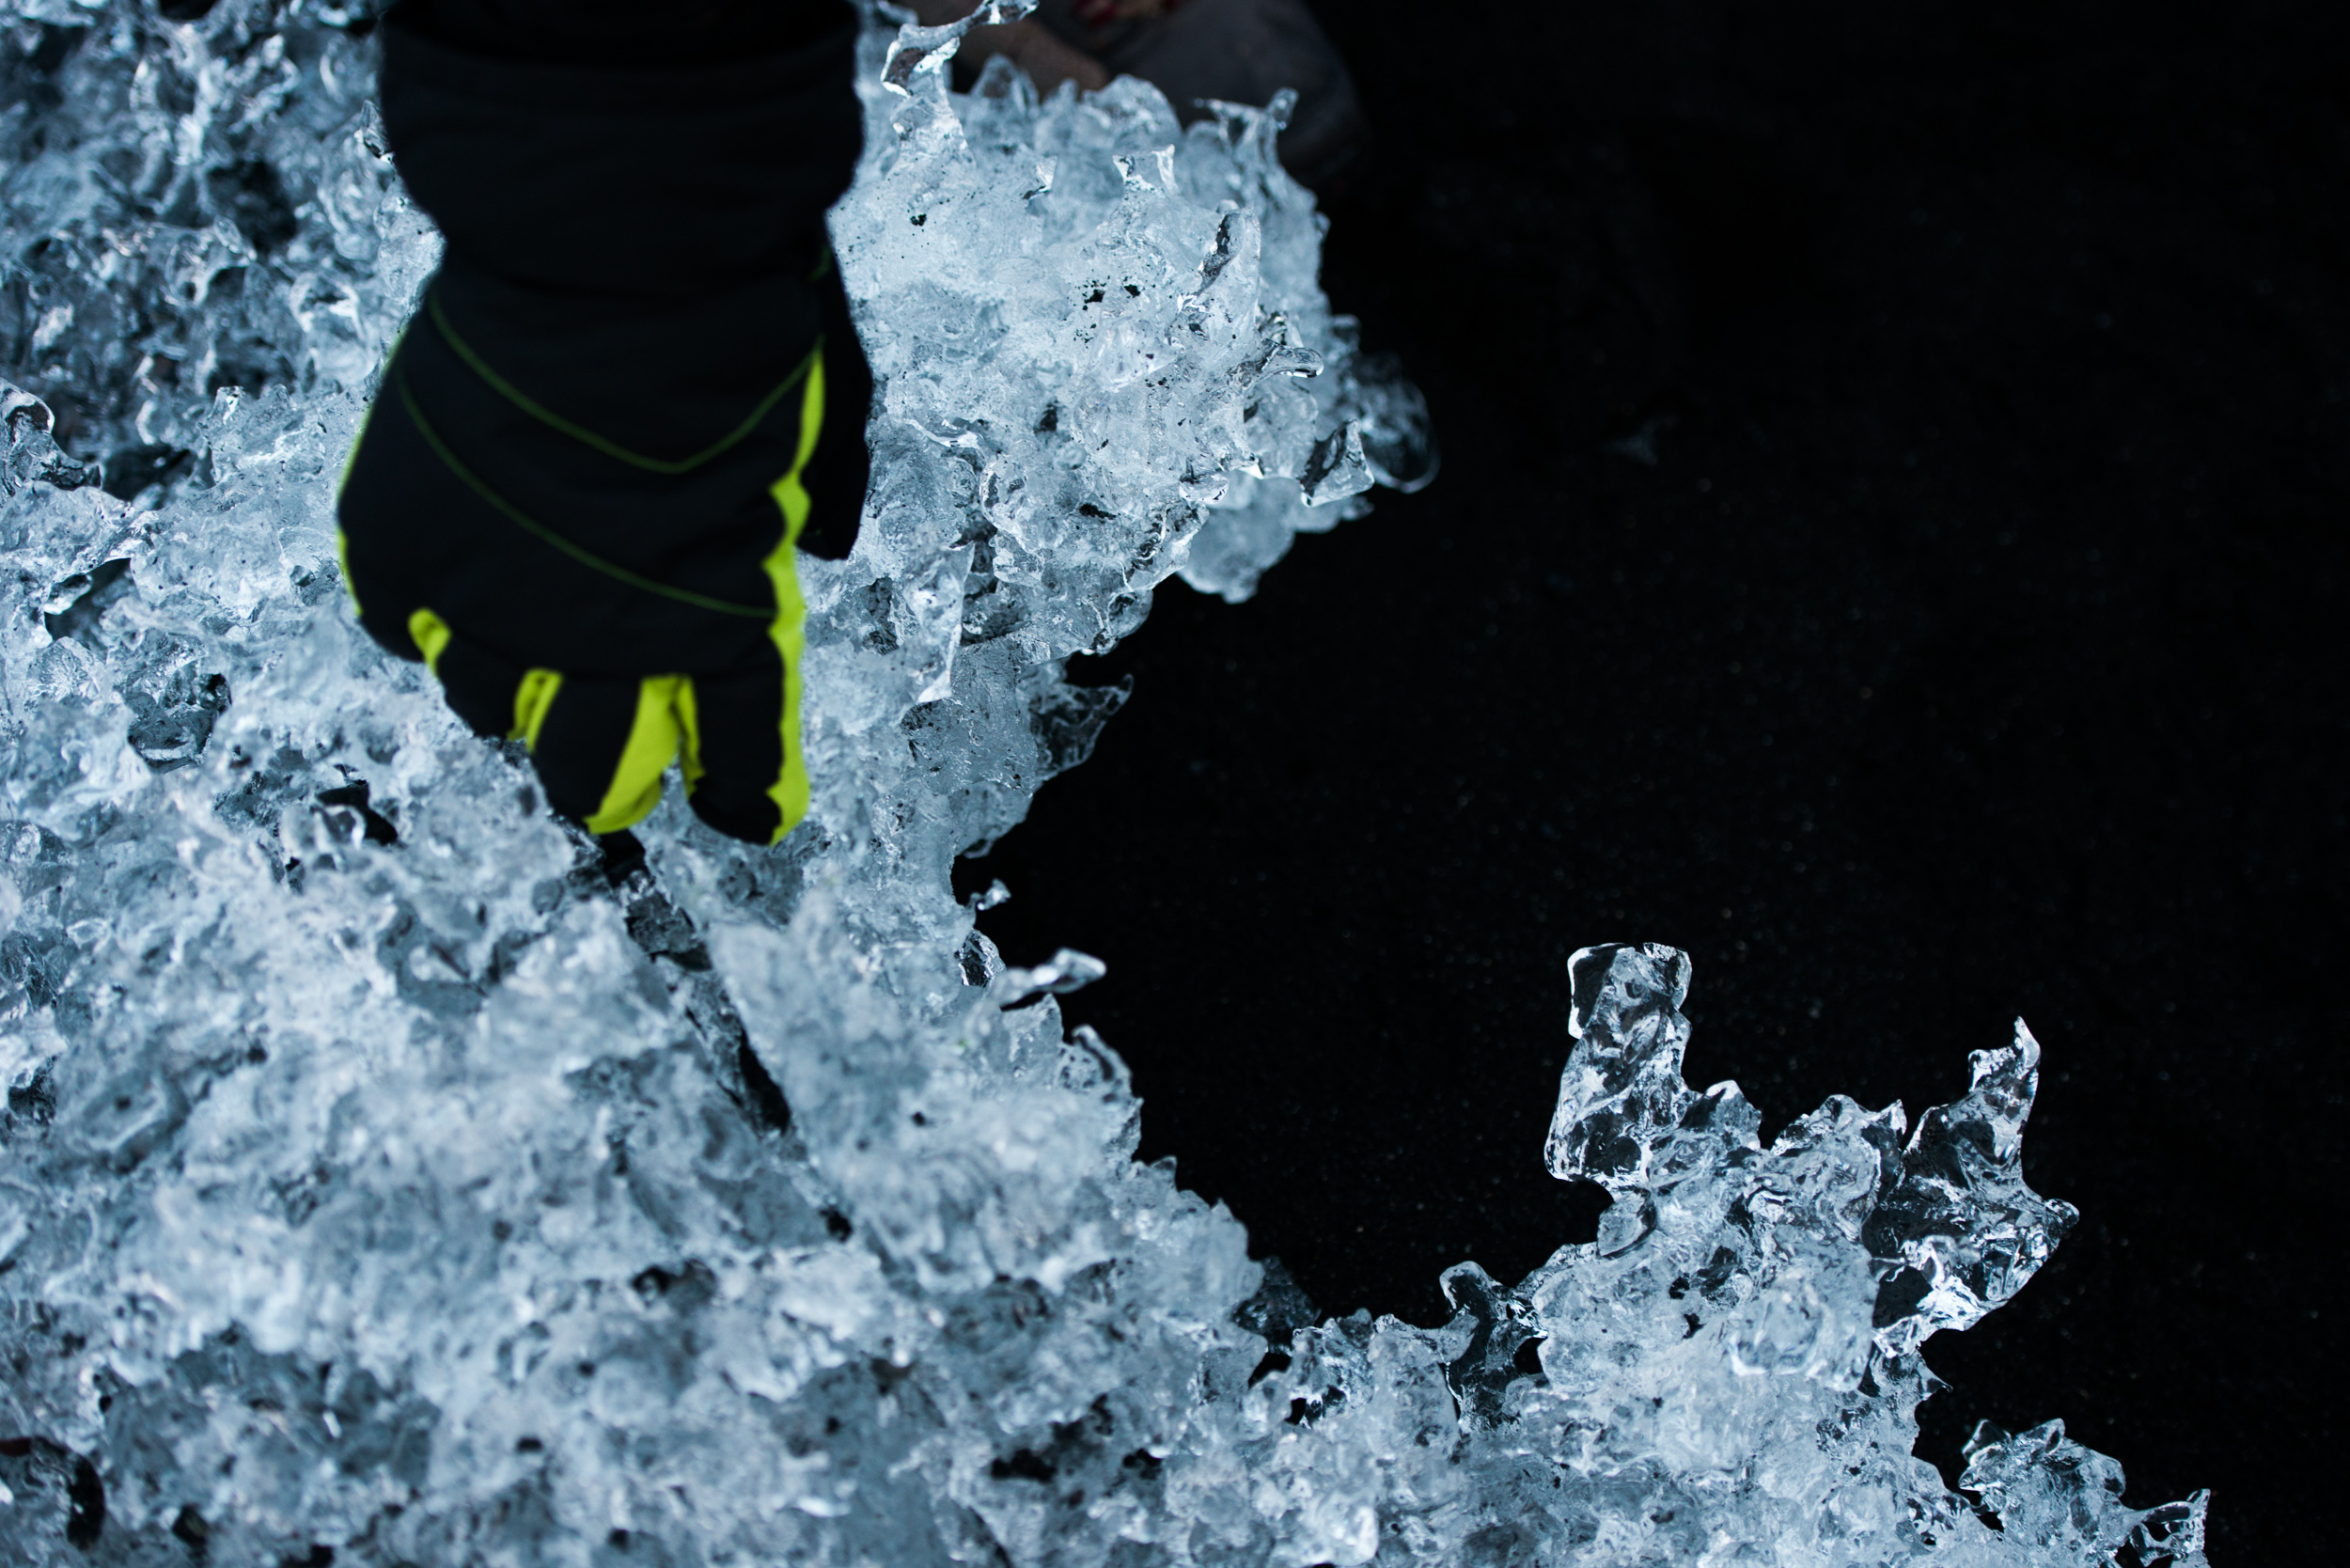 Finding the perfect chunk of glacier to cool our gin and tonics that night...